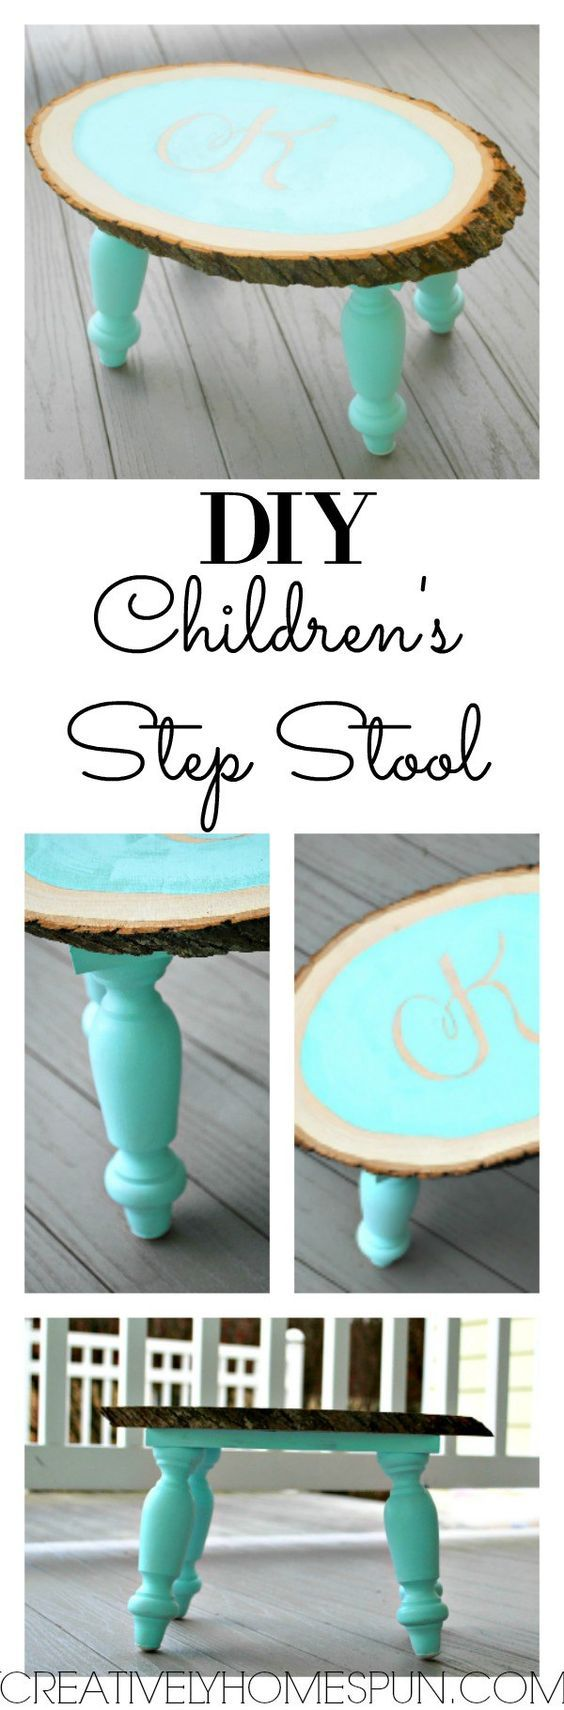 DIY Children's Step Stool #Createandsharechallenge #DIYdecor #walnuthollow The Ultimate Pinterest Party, Week 101